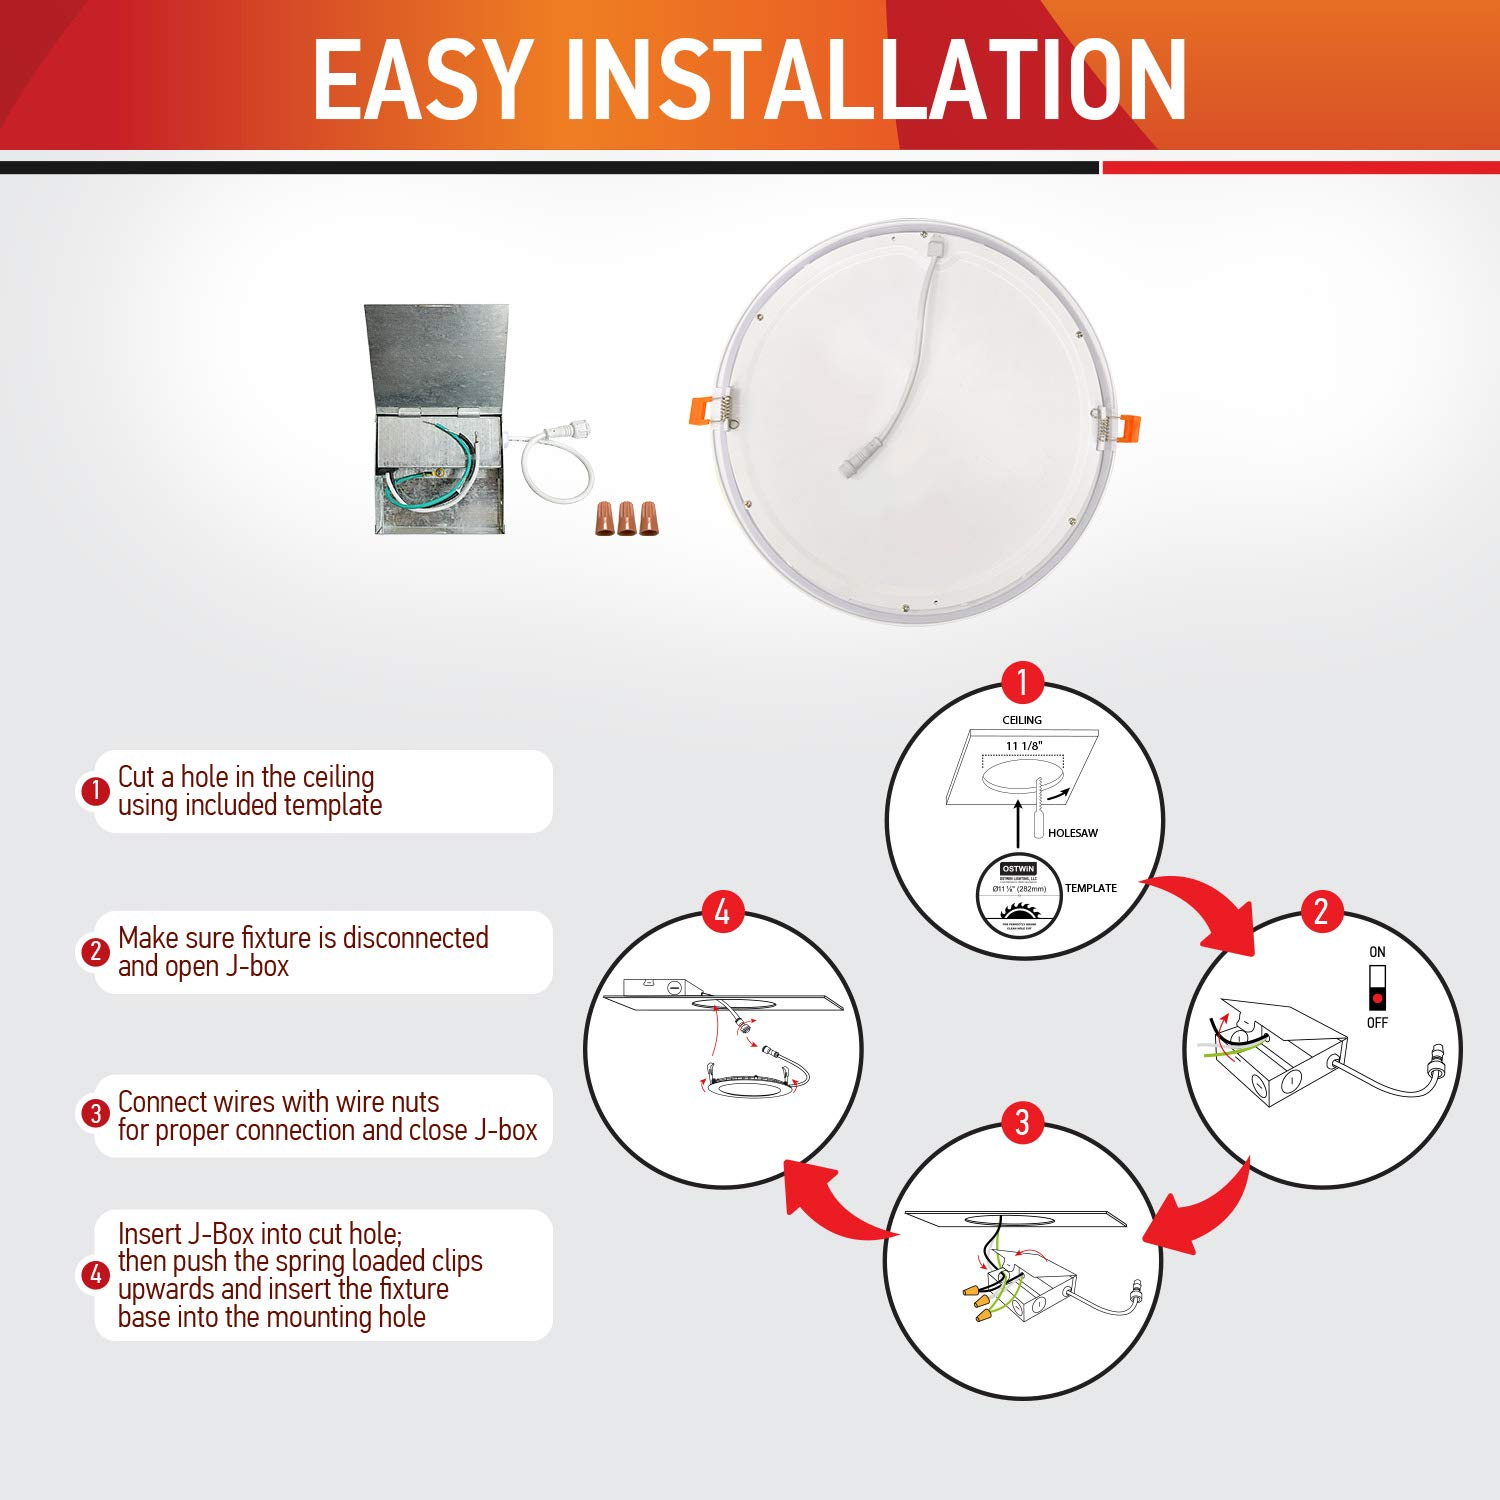 OSTWIN 12 inch 24W (120 Watt Repl.) IC Rated LED Recessed Low Profile Slim Round Panel Light with Junction Box, Dimmable, 3000K Warm Light 1800 Lm. No Can Needed, 12 Pack ETL & Energy Star Listed by OSTWIN (Image #5)